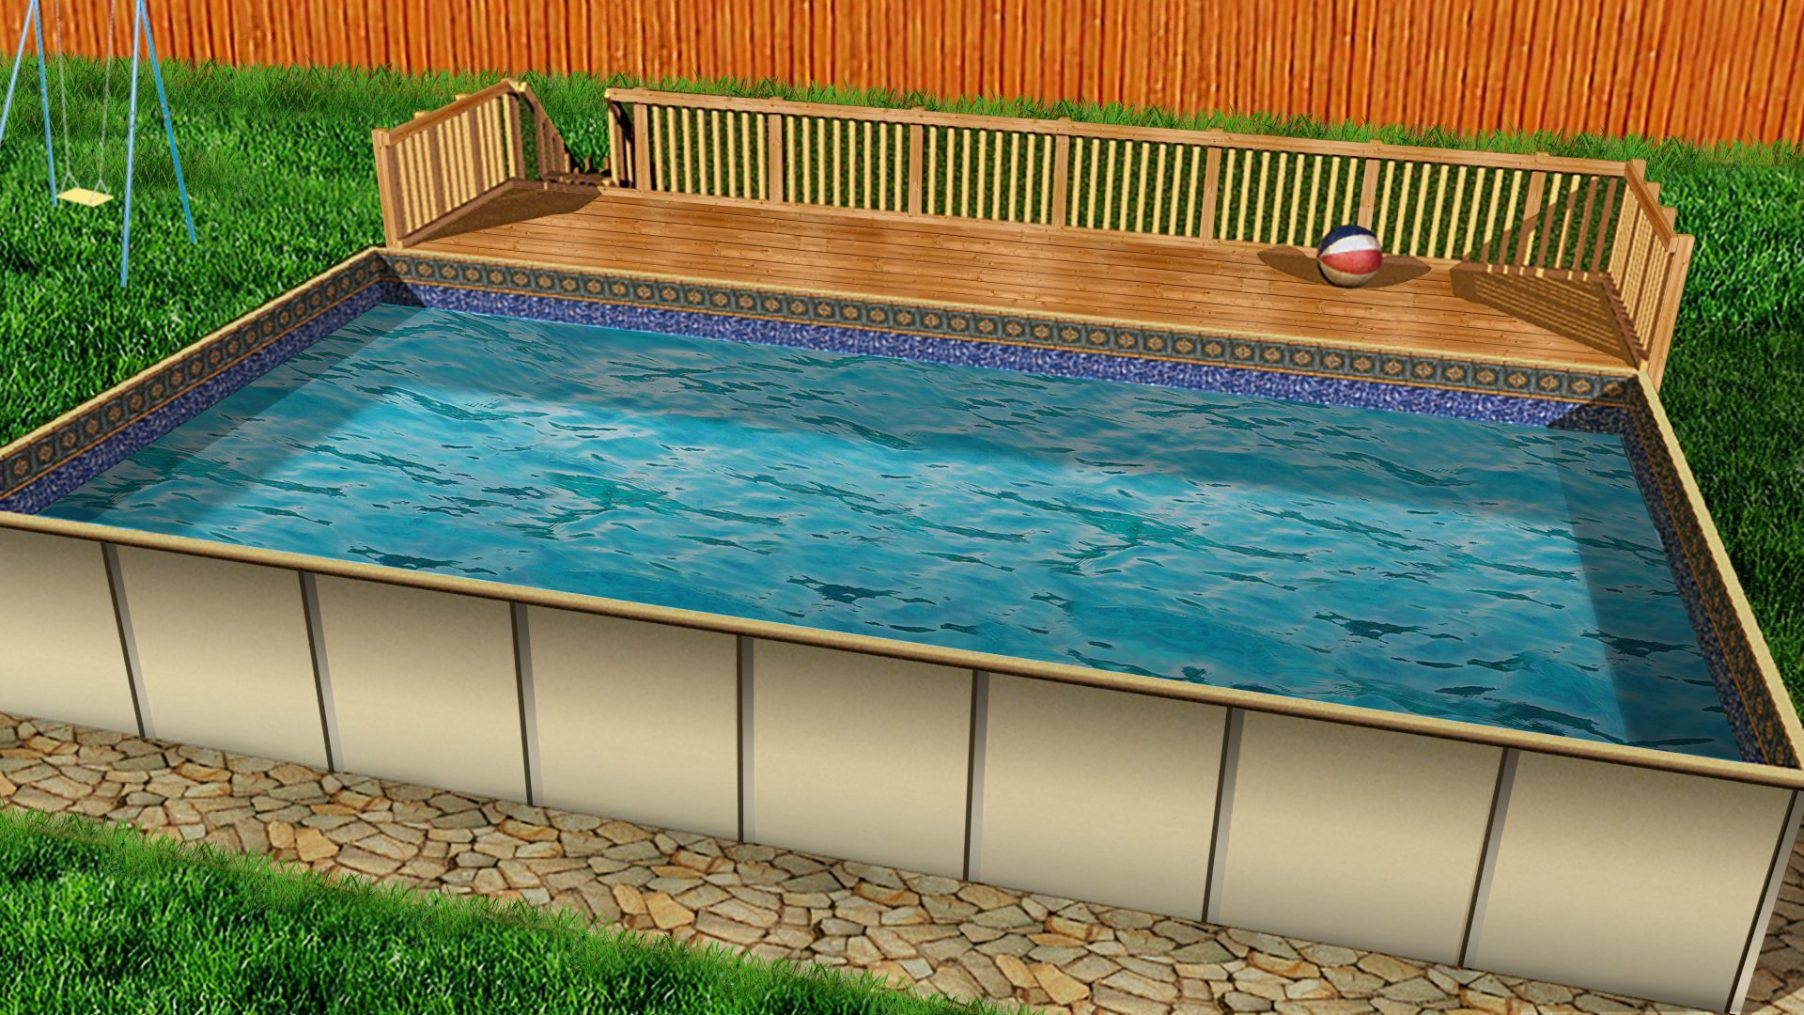 Swimming pool discountershercules inground aluminum pools for On ground pools